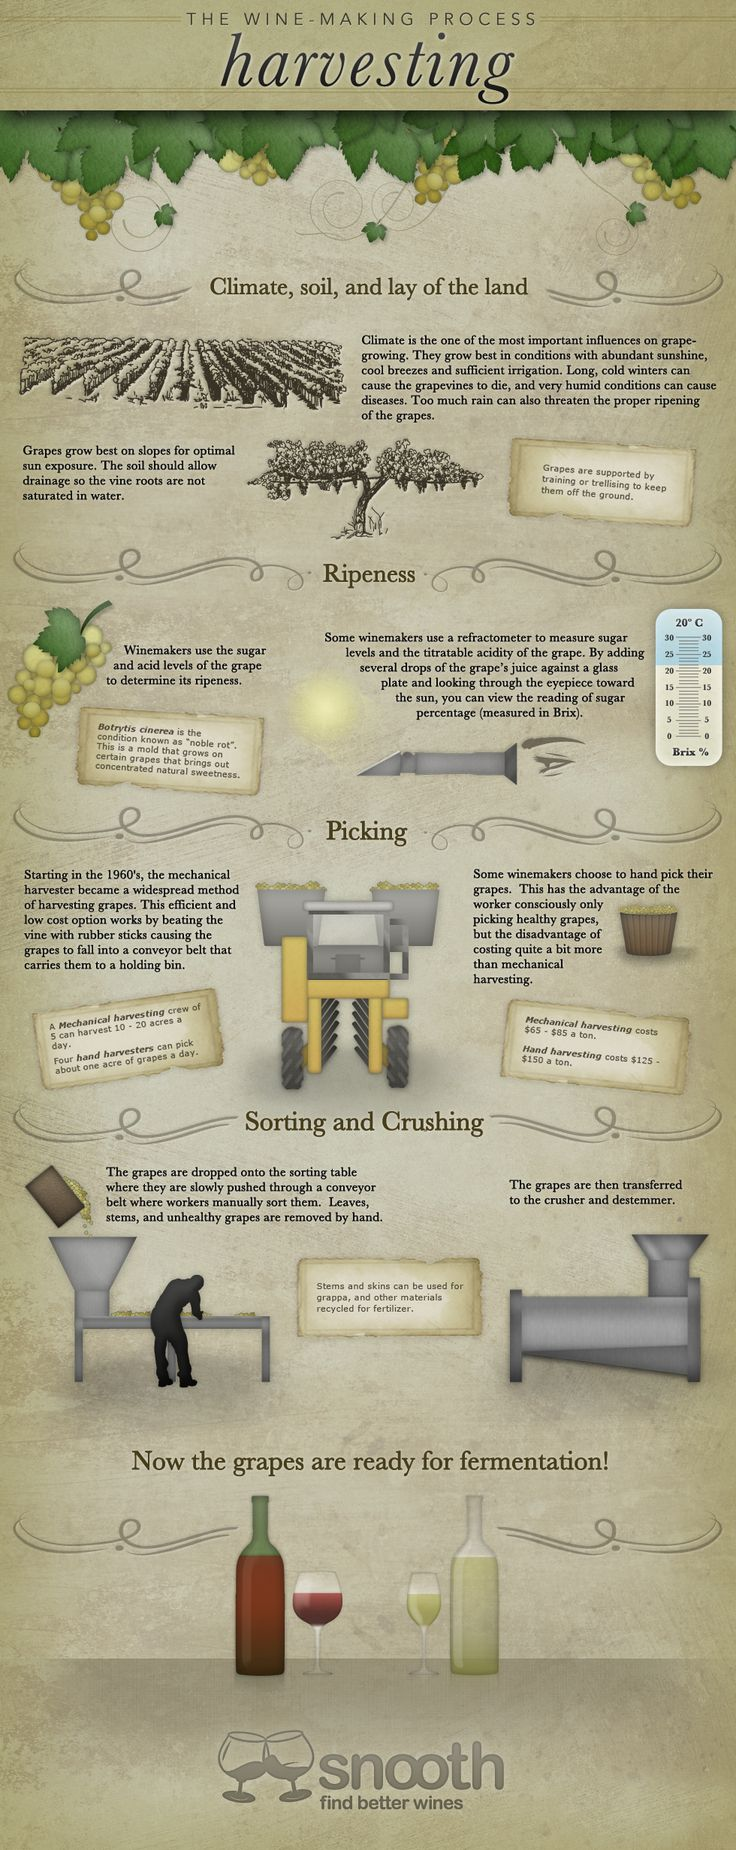 """The Wine Making Process: Harvesting"" Nov-2011 by Snooth.com - Infographic"